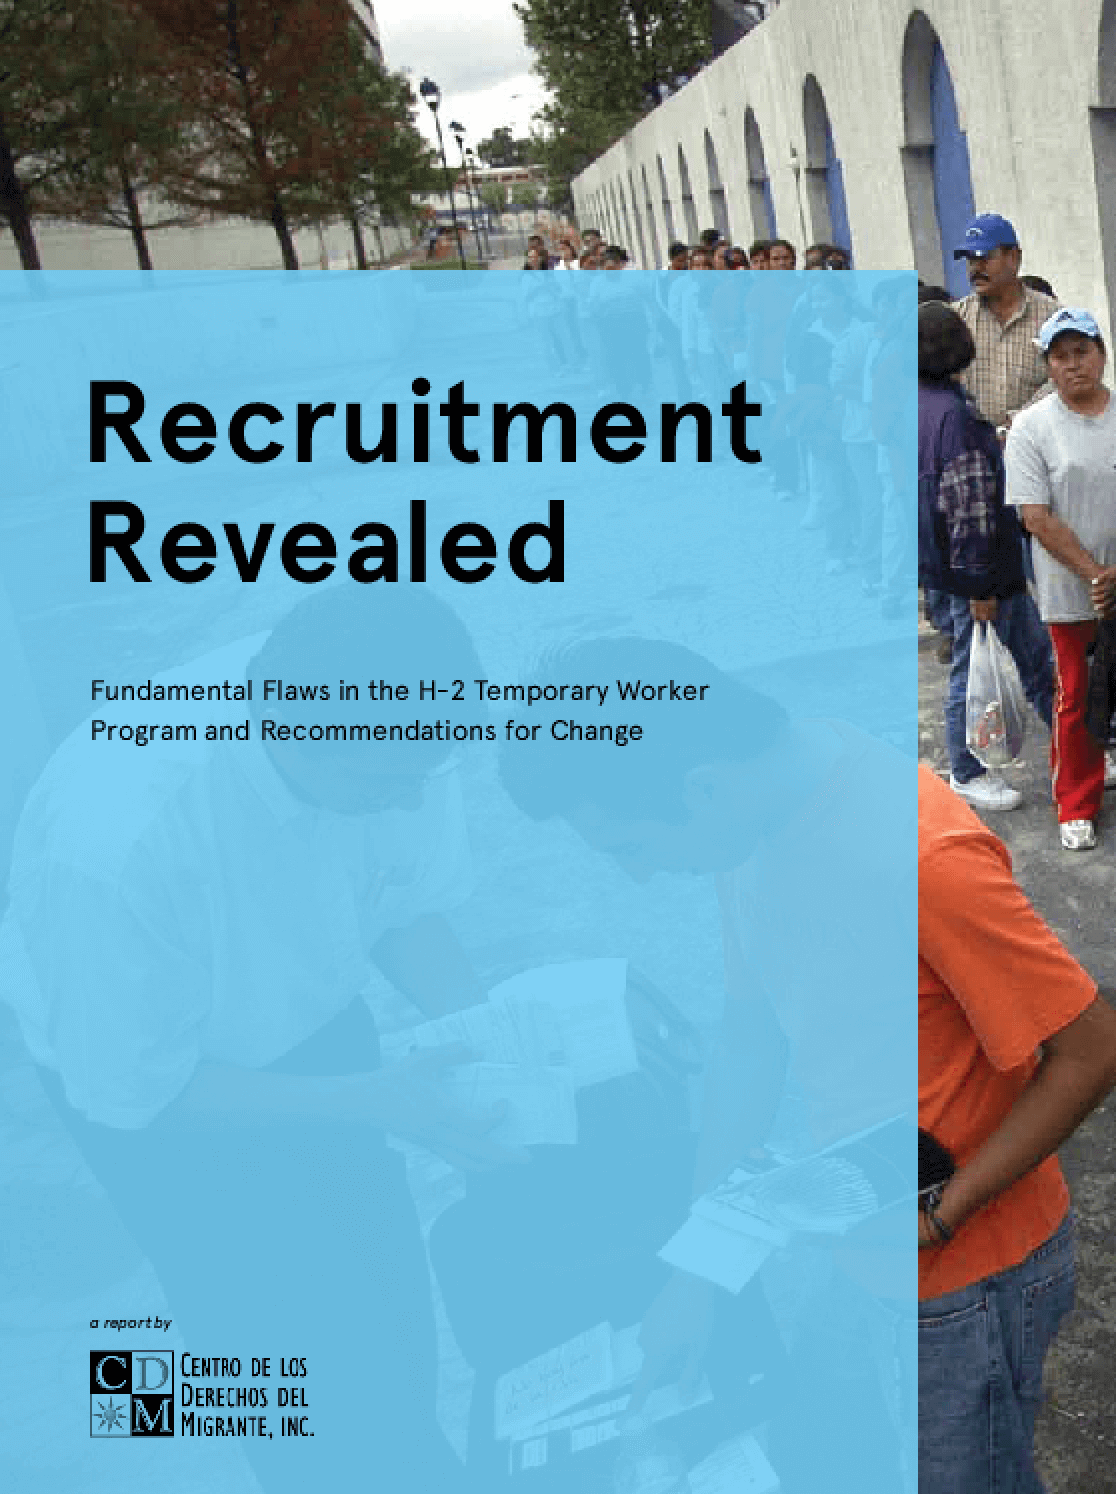 Recruitment Revealed: Fundamental Flaws in the H-2 Temporary Worker Program and Recommendations for Change